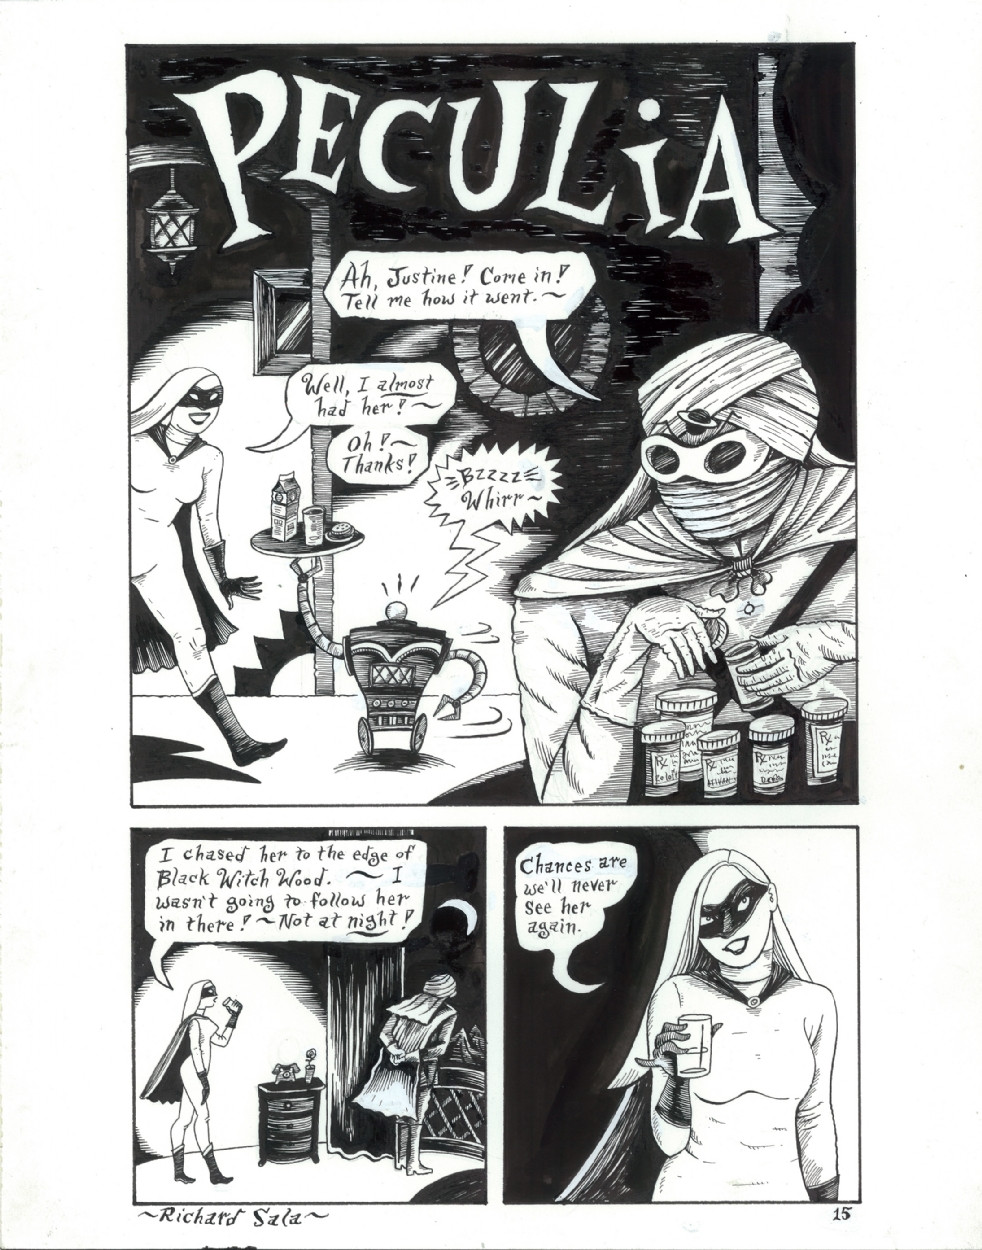 Peculia page 15 by Richard Sala